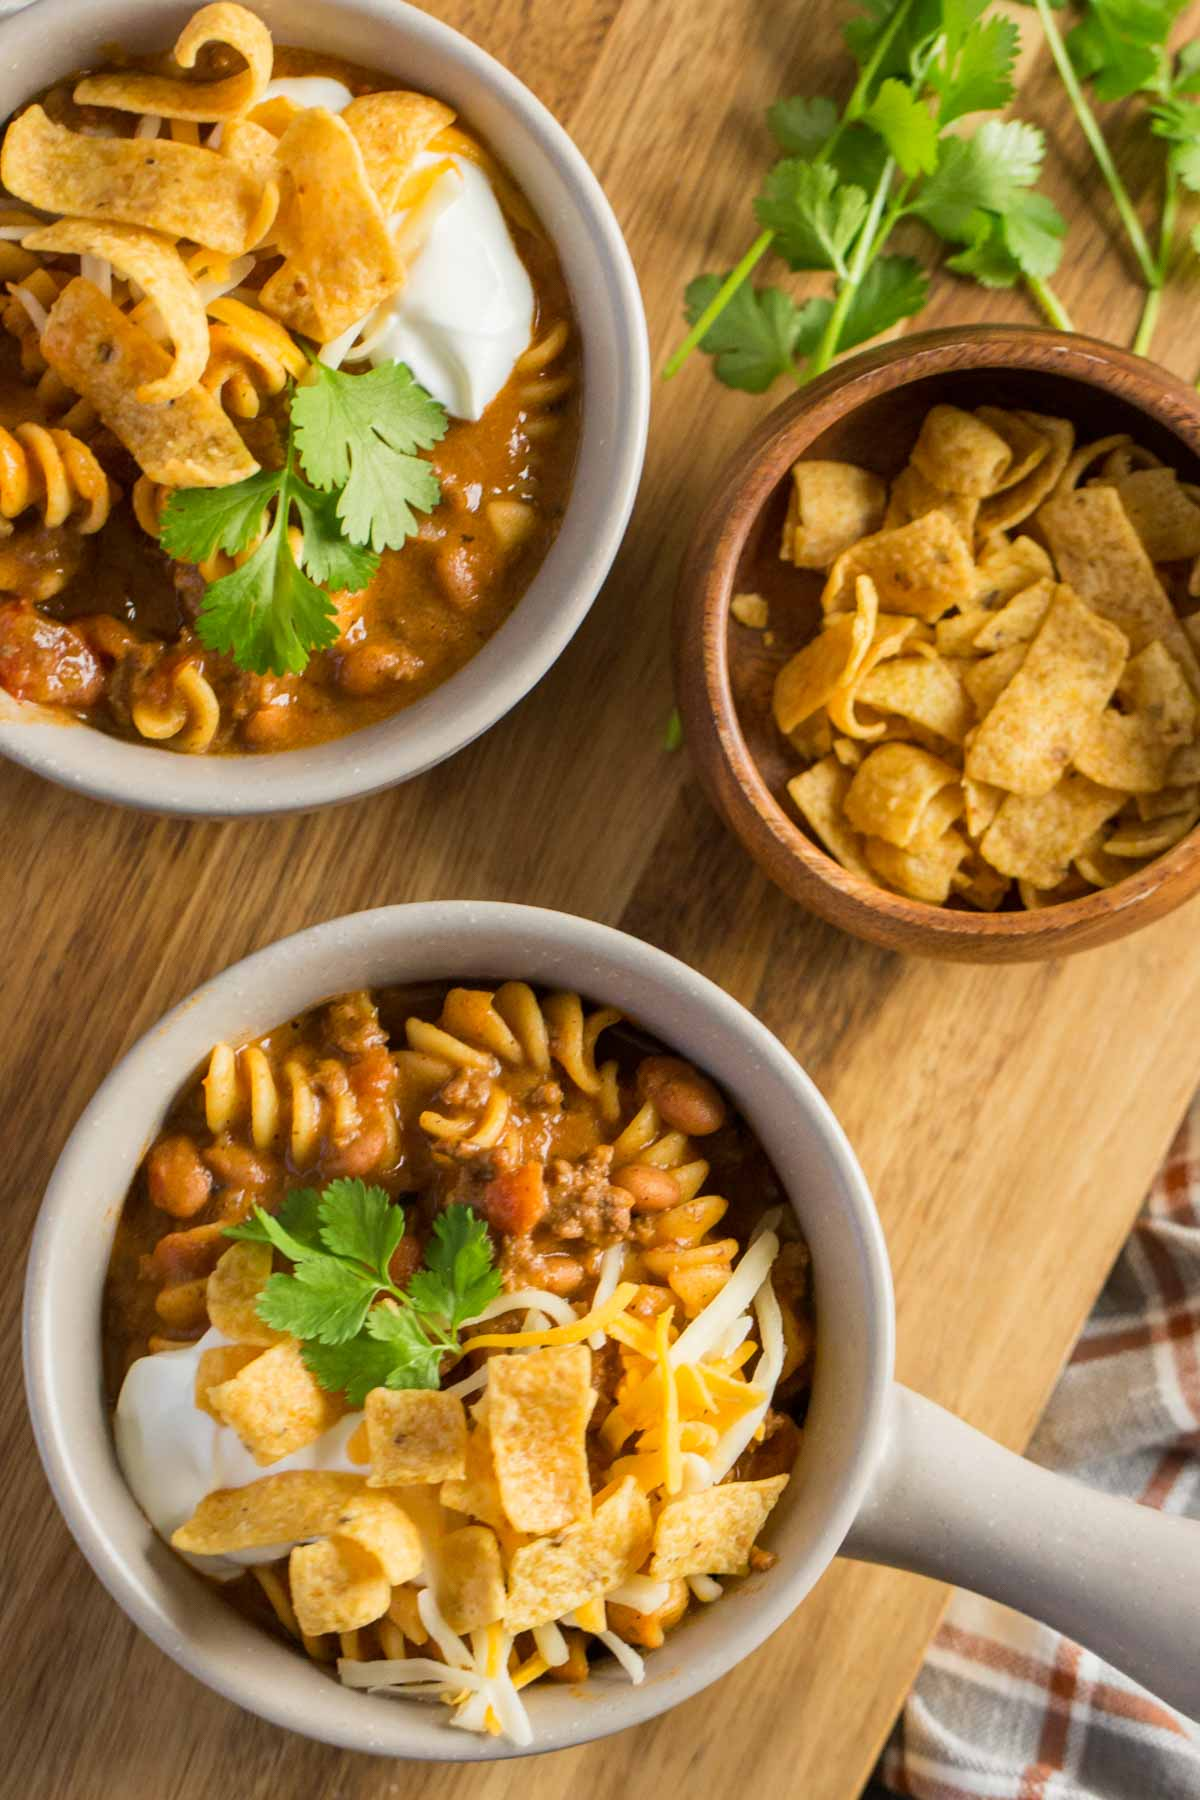 A top down view of two bowls Beef Queso Chili topped with sour cream, Fritos and Cilantro on a wooden board.